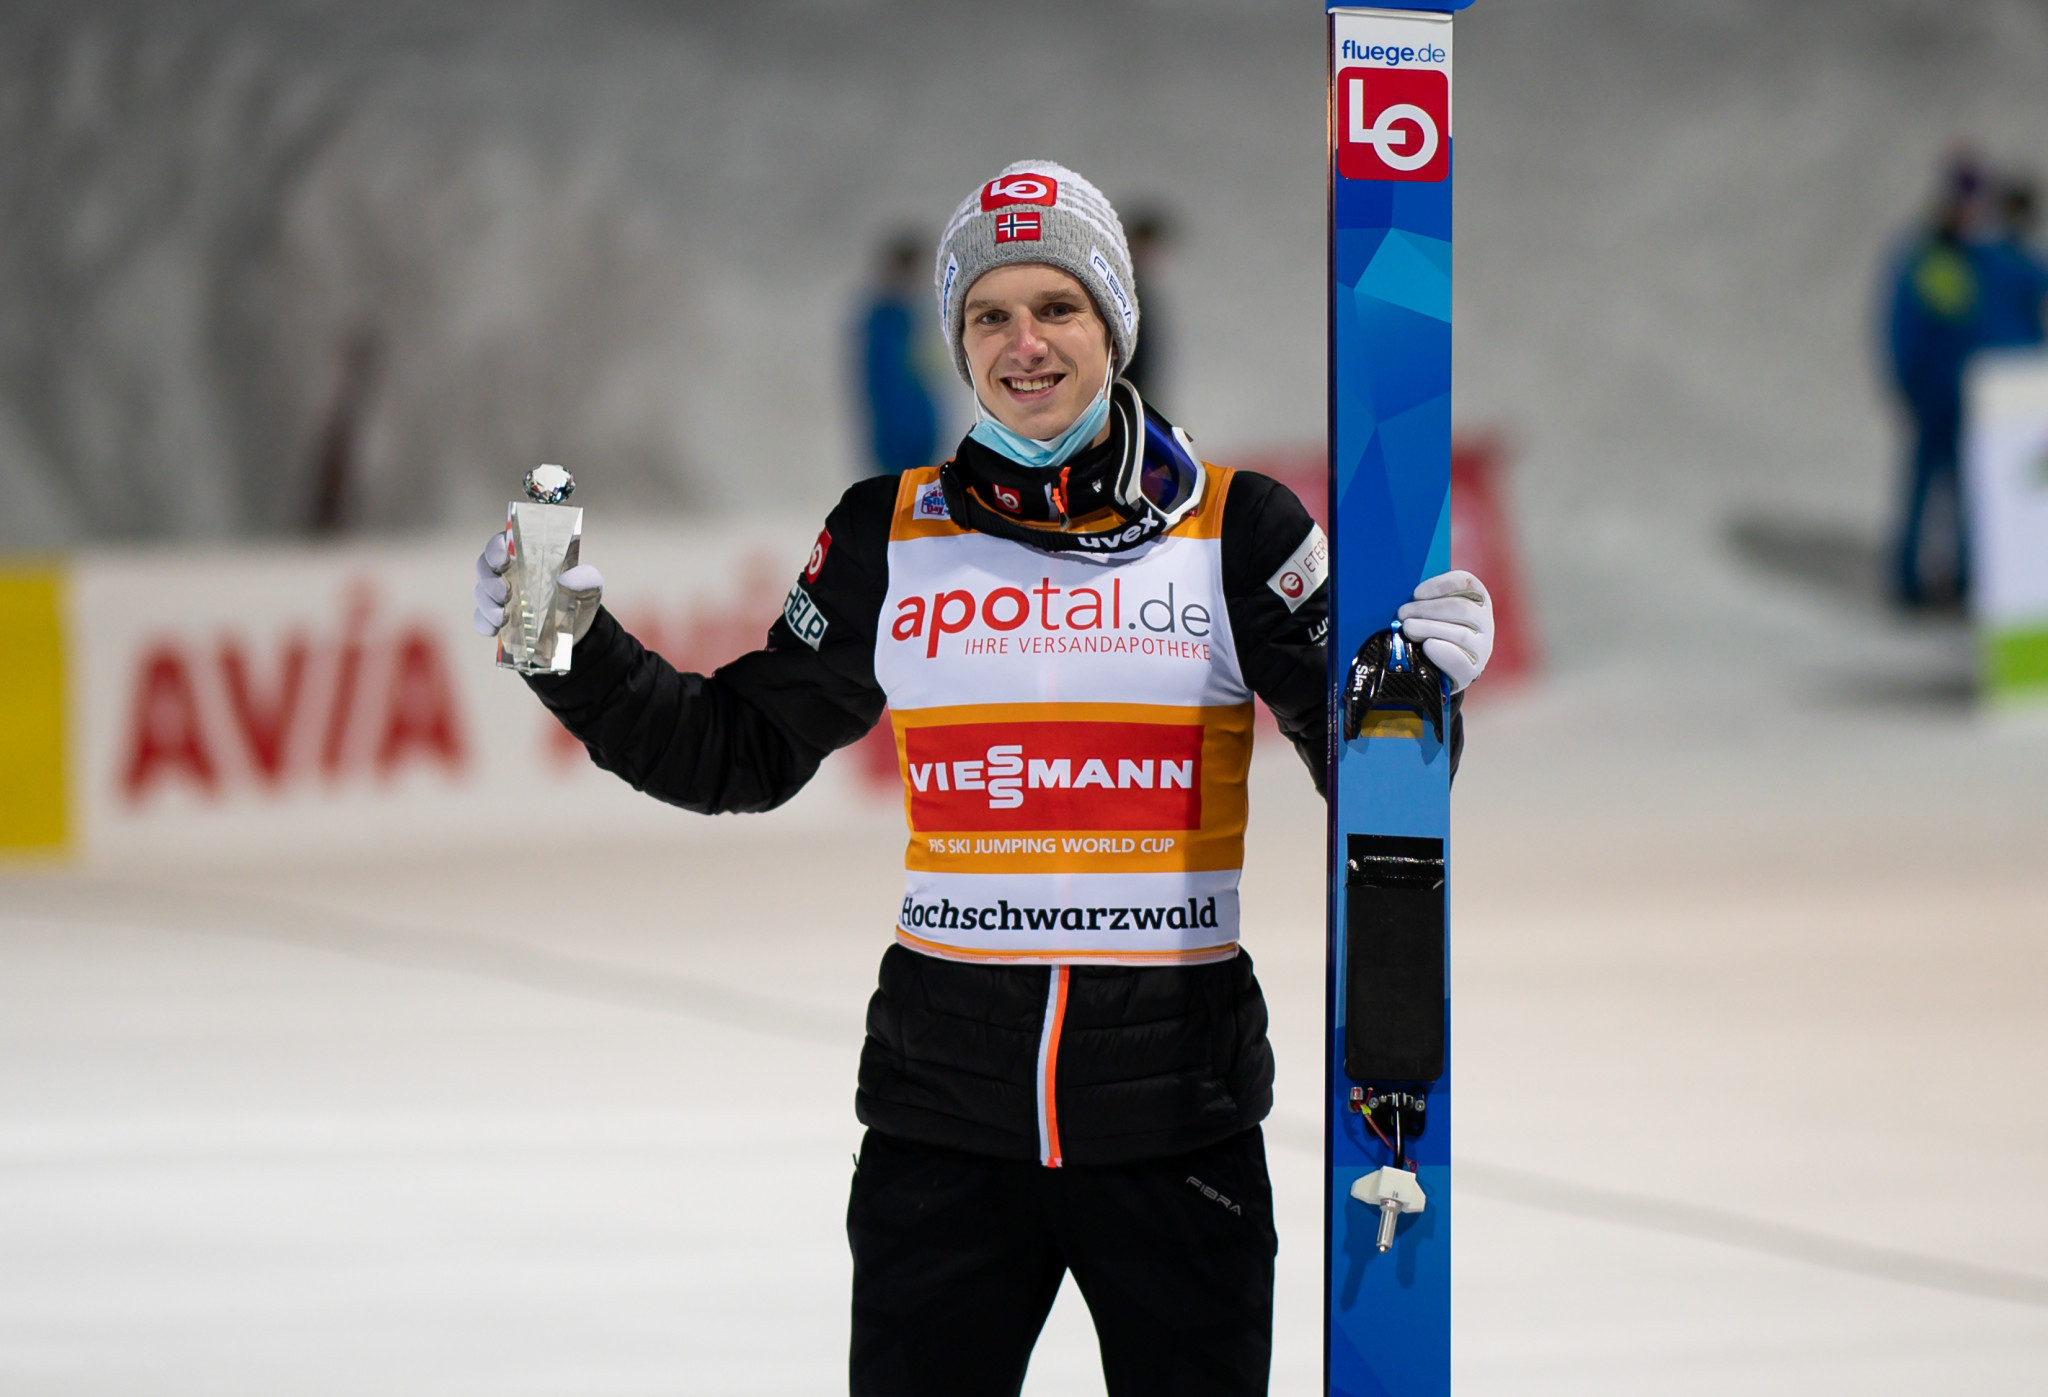 Granerud wins second day in Titisee-Neustadt at FIS Ski Jumping World Cup